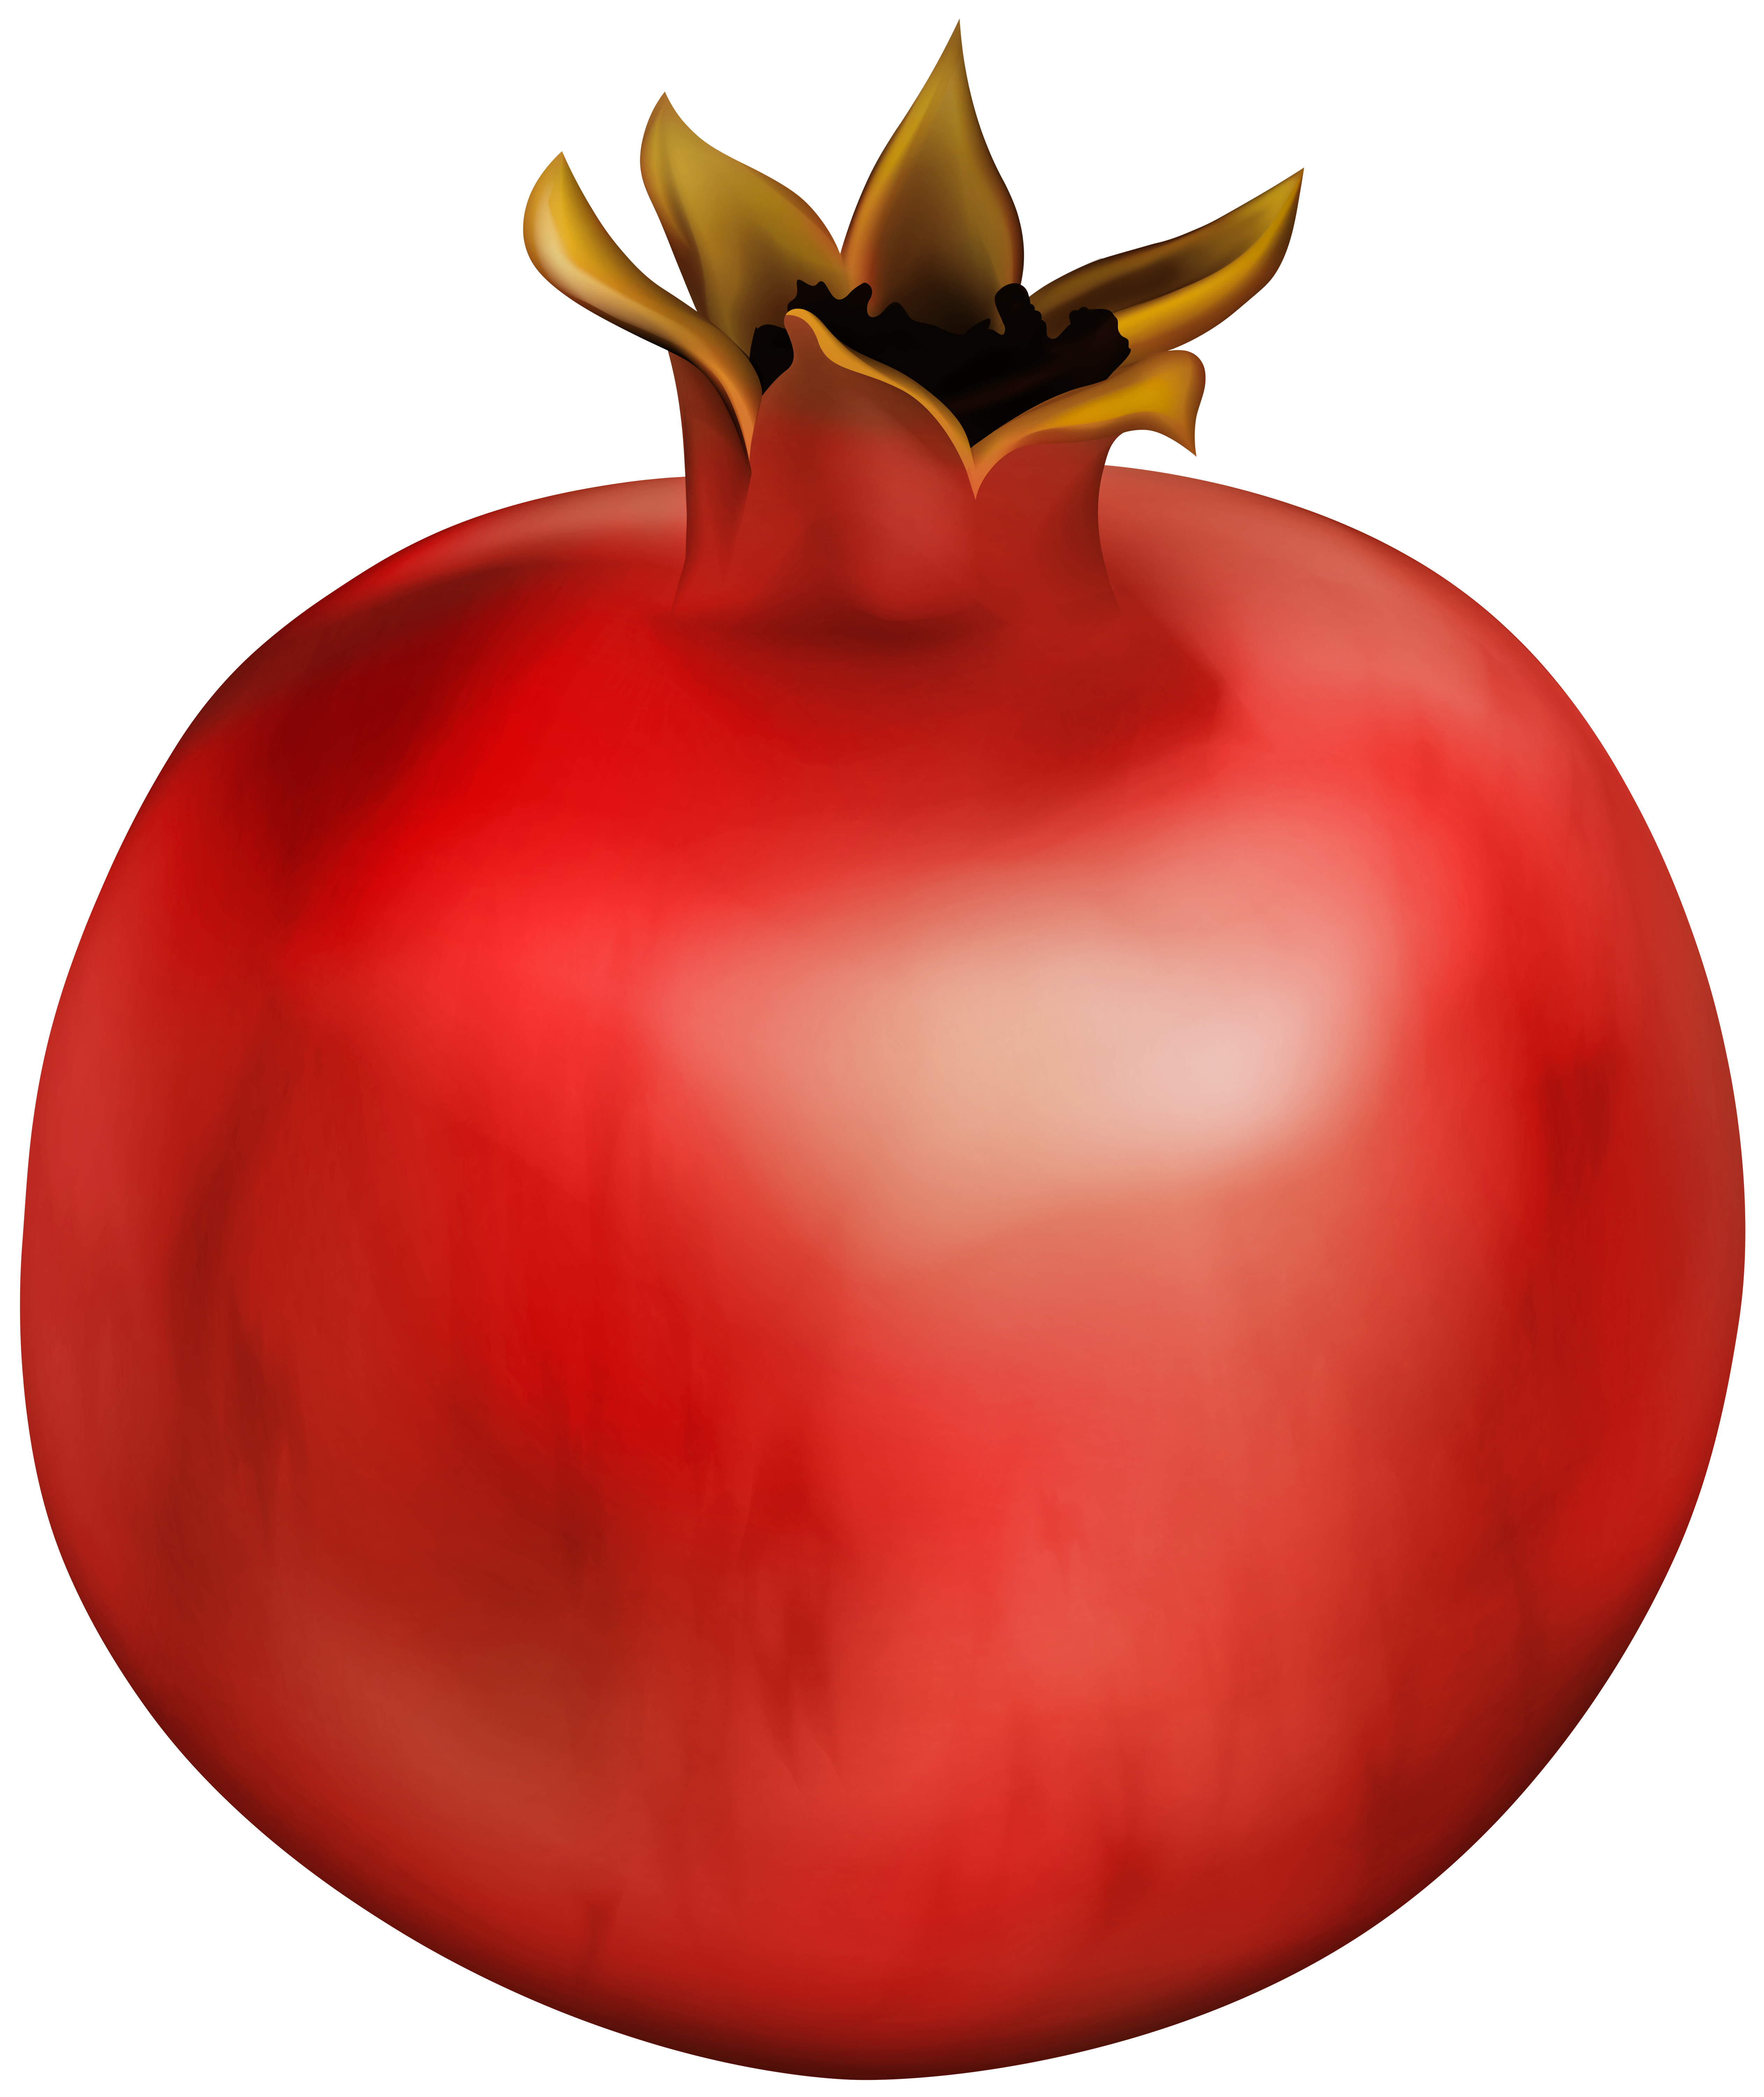 Pomegranate clipart half. Gallery yopriceville high quality